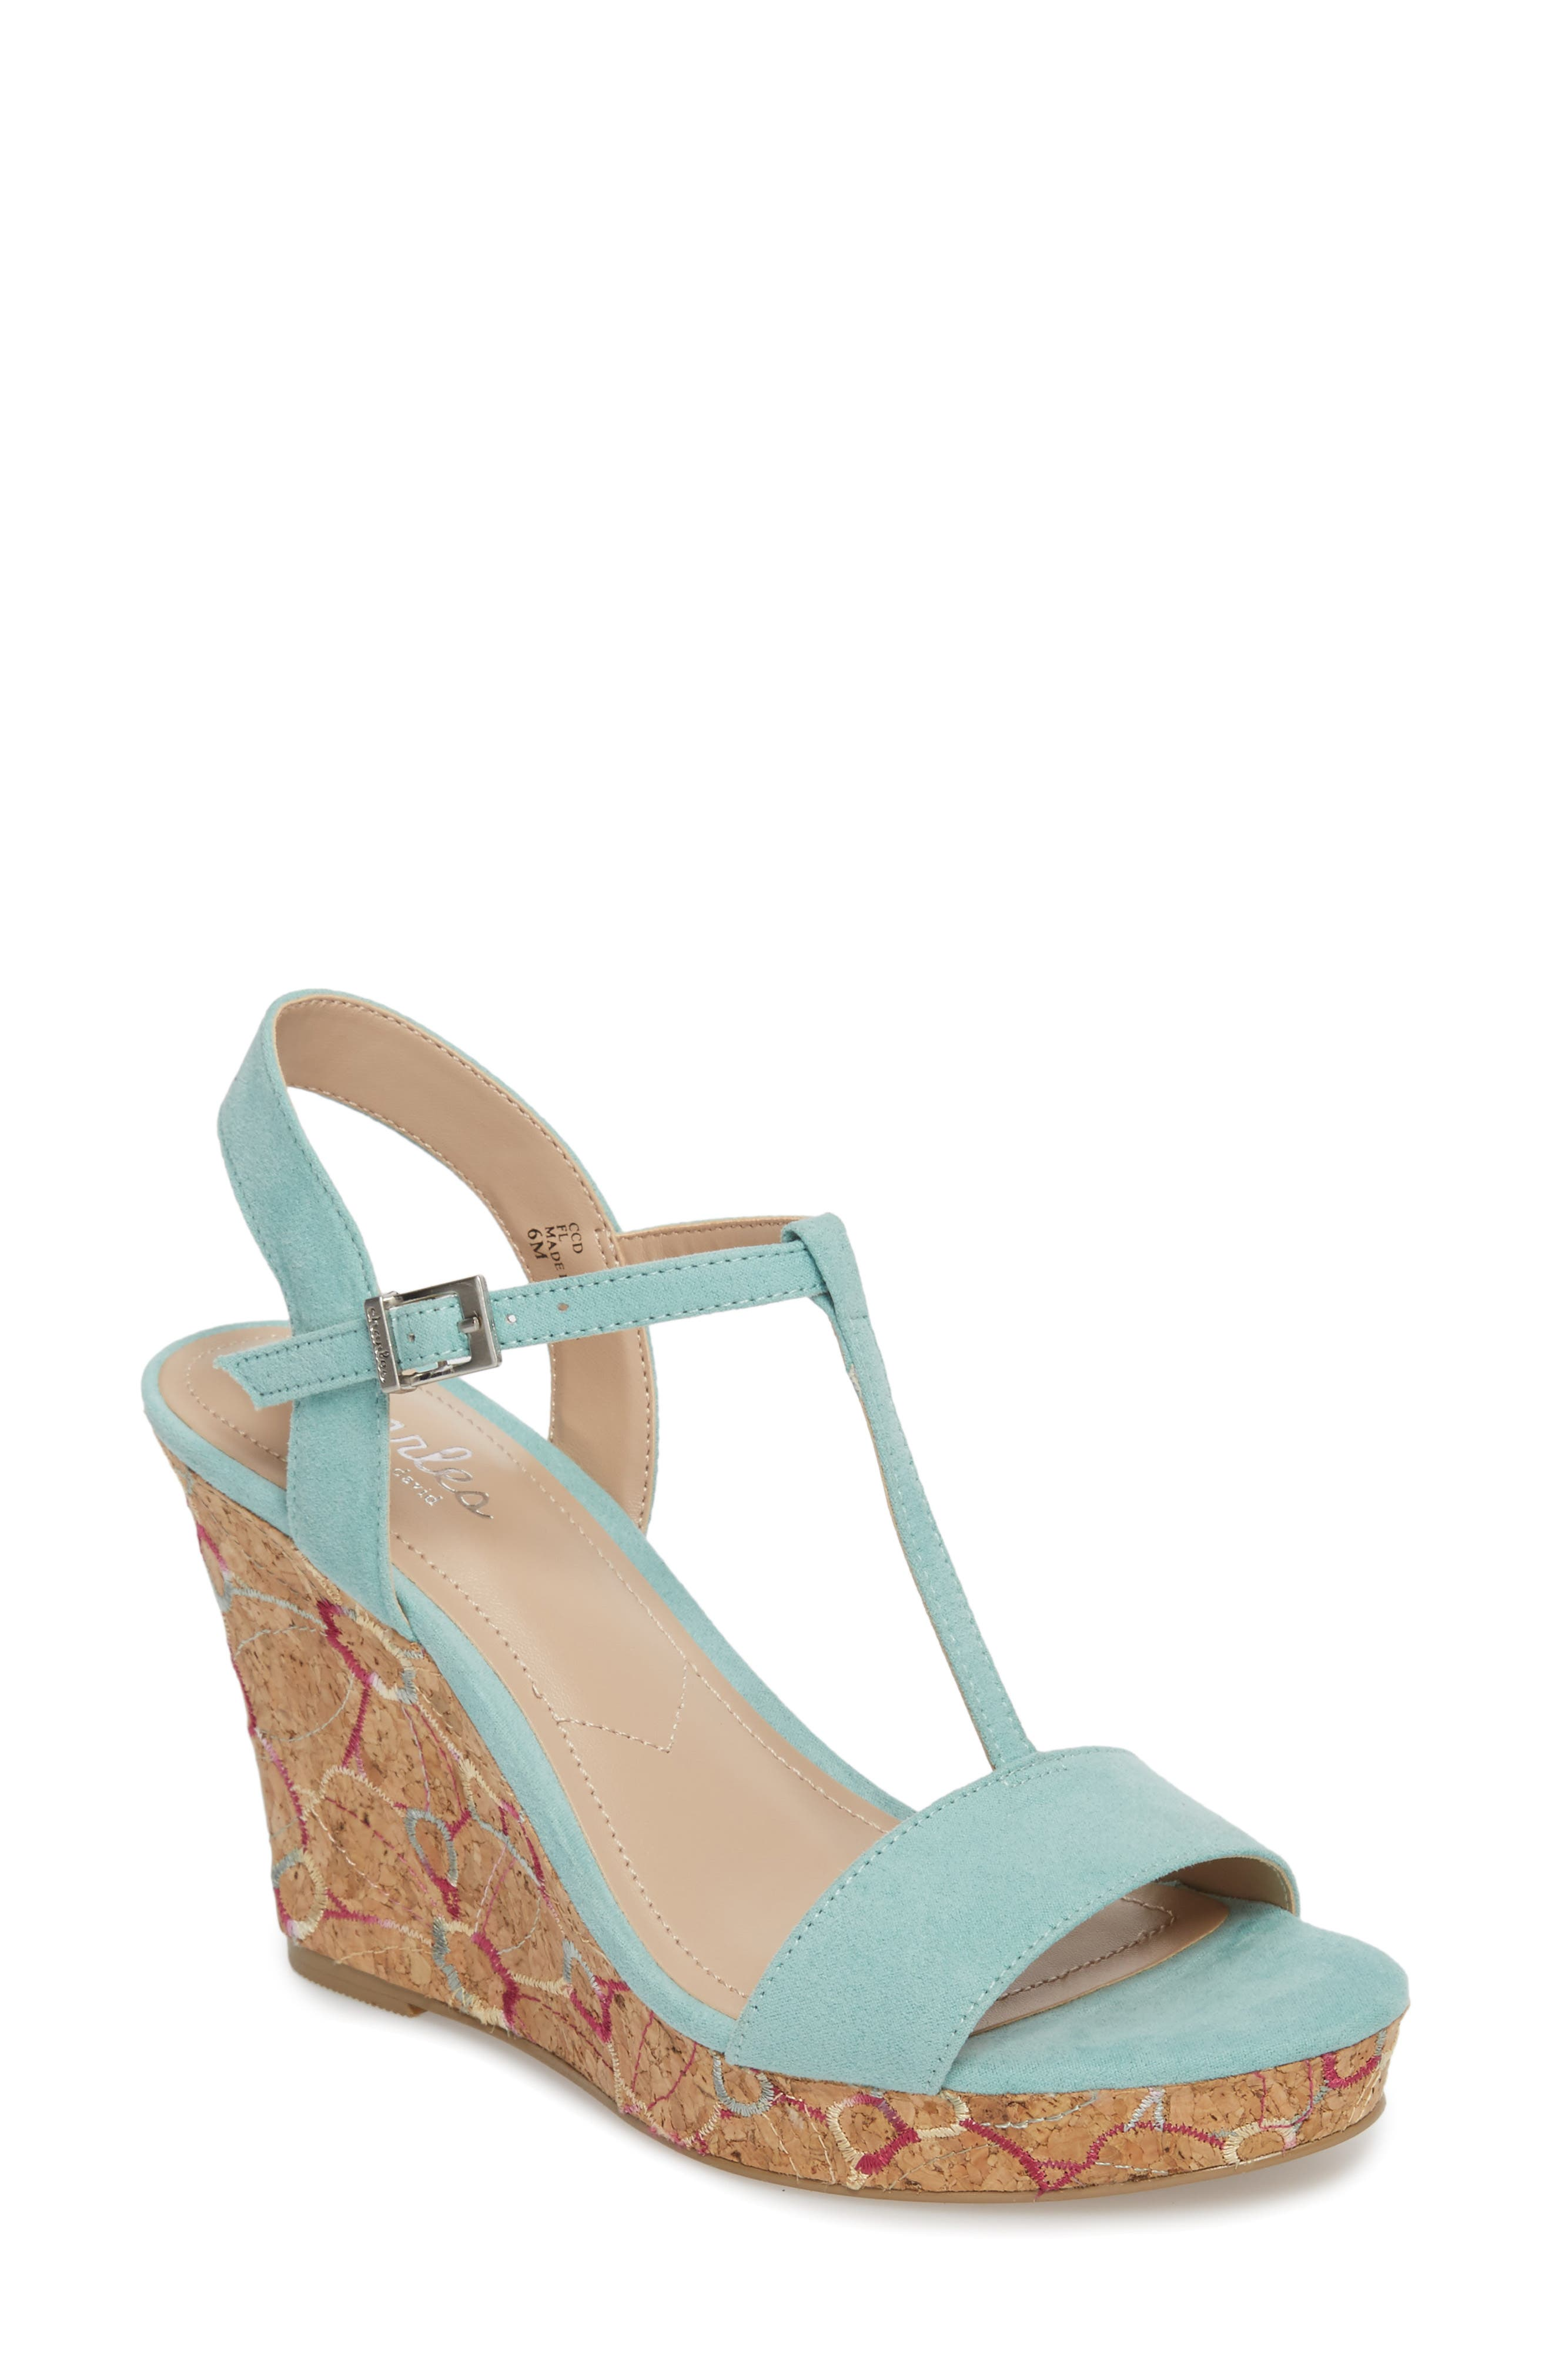 Laney Embroidered Wedge Sandal,                         Main,                         color, MINT GREEN SUEDE